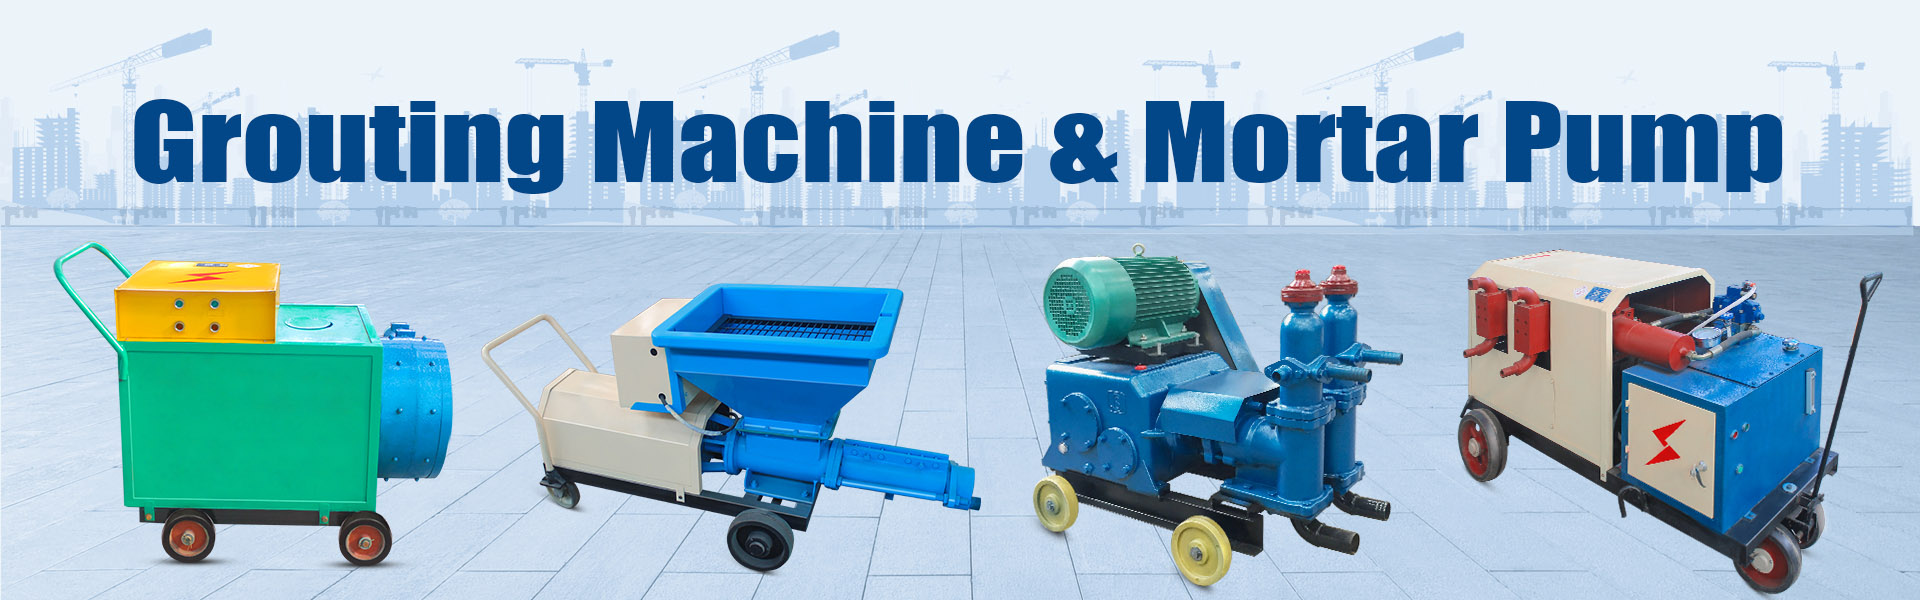 grouting-machines-mortar-pump-price